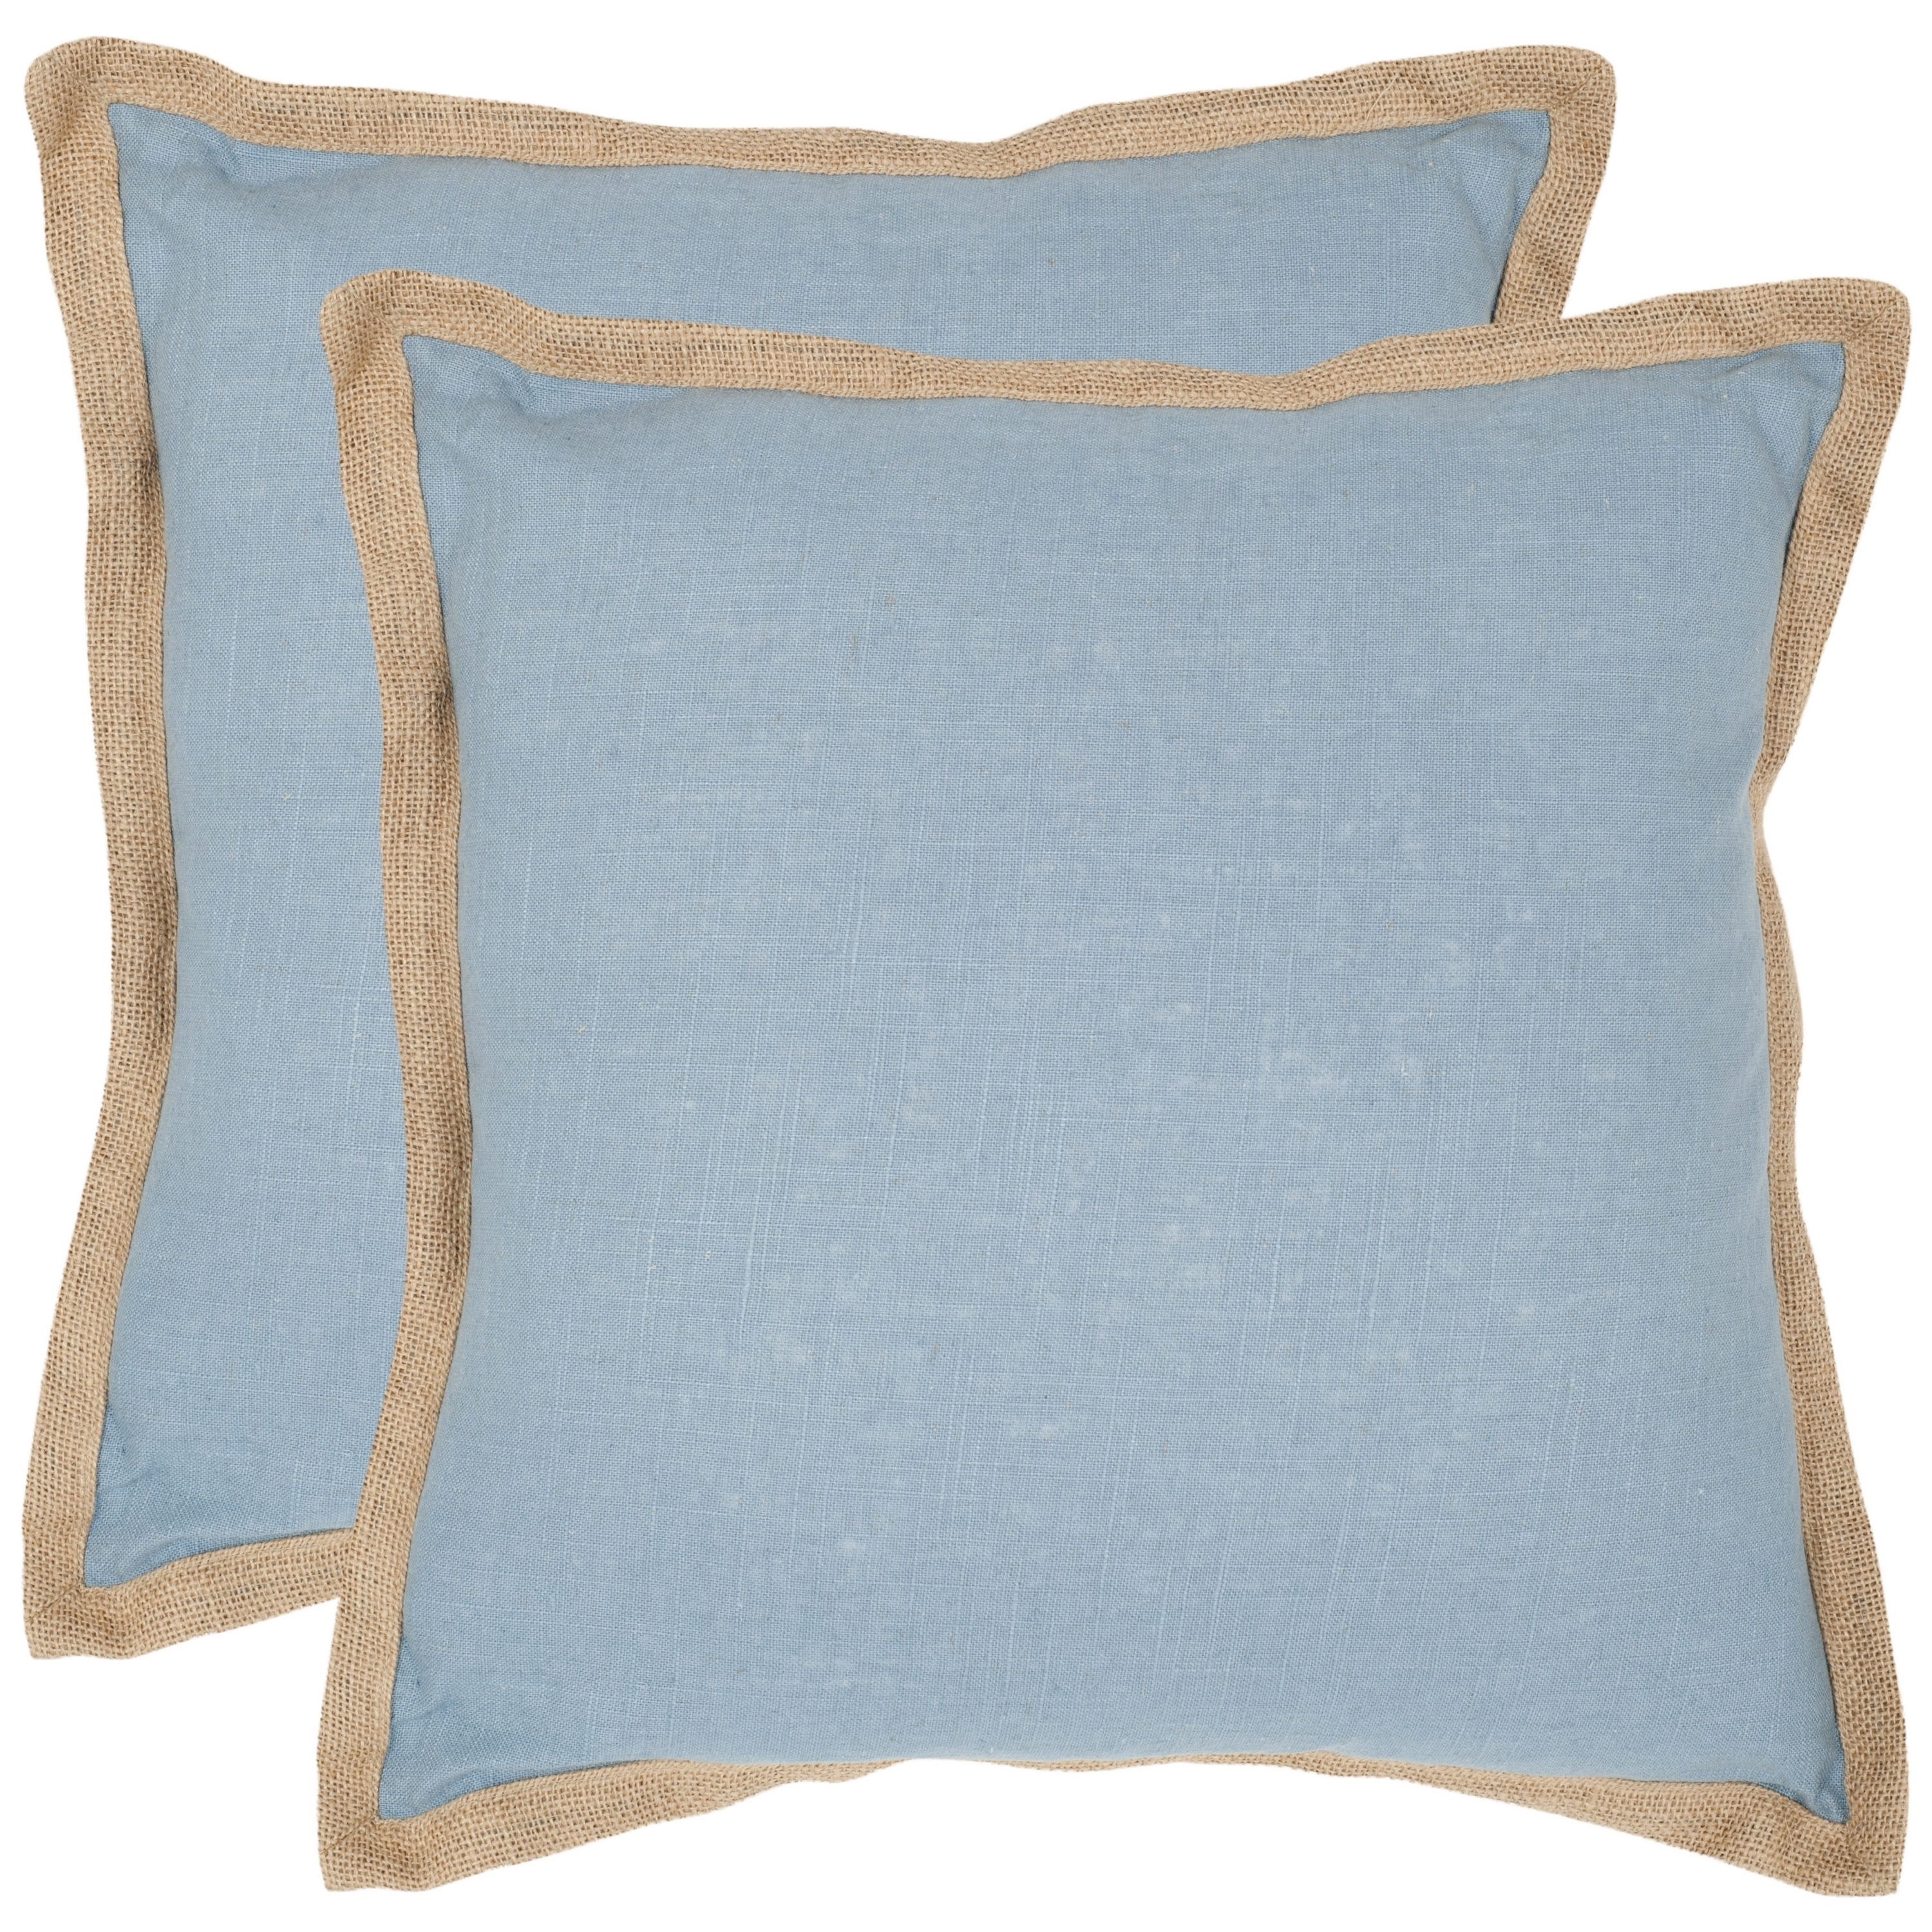 small replacement room sectional living throw pillow couch sofa comfortible and pillows foam blue for cushion yellow